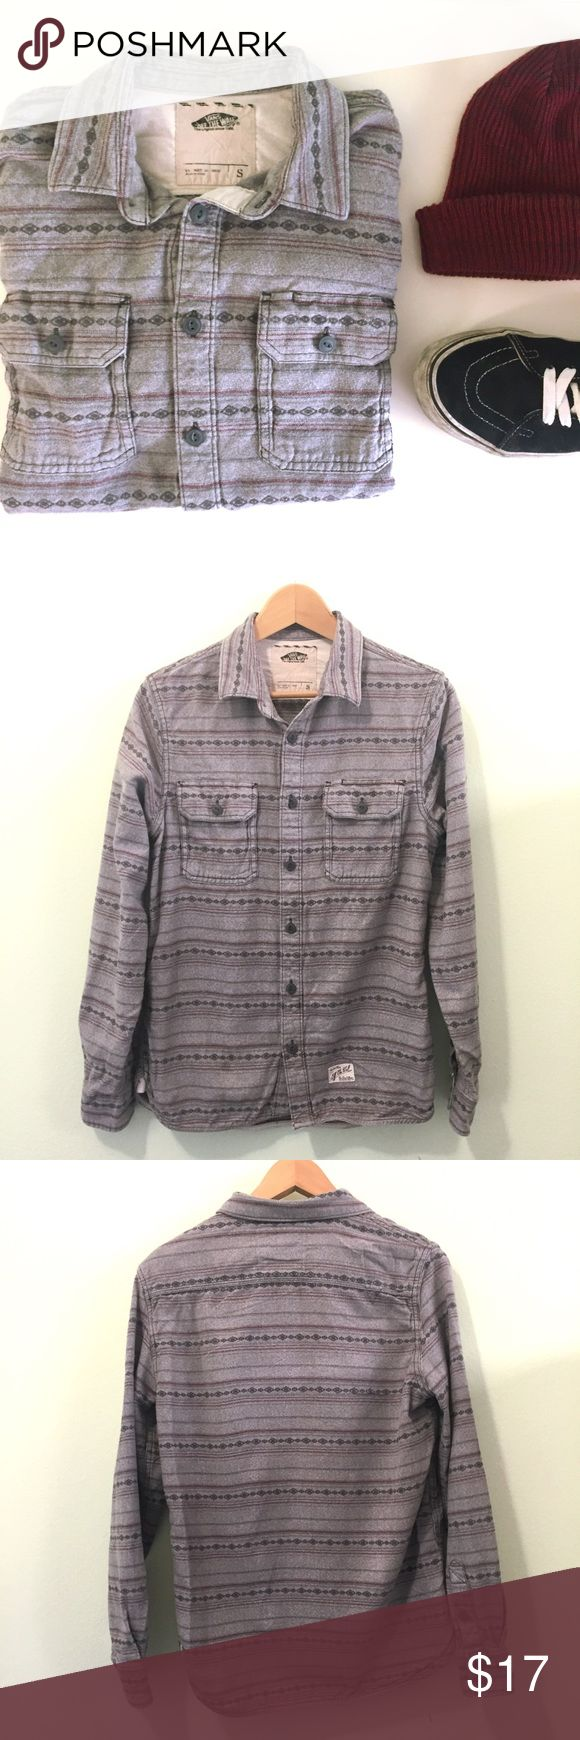 Vans Buttondown Shirt • Vans Buttondown Long Sleeve Shirt • in great condition • Light gray in color with dark gray and Burgundy detail • Feature two chest pockets • Made in India • 100% cotton Vans Shirts Casual Button Down Shirts